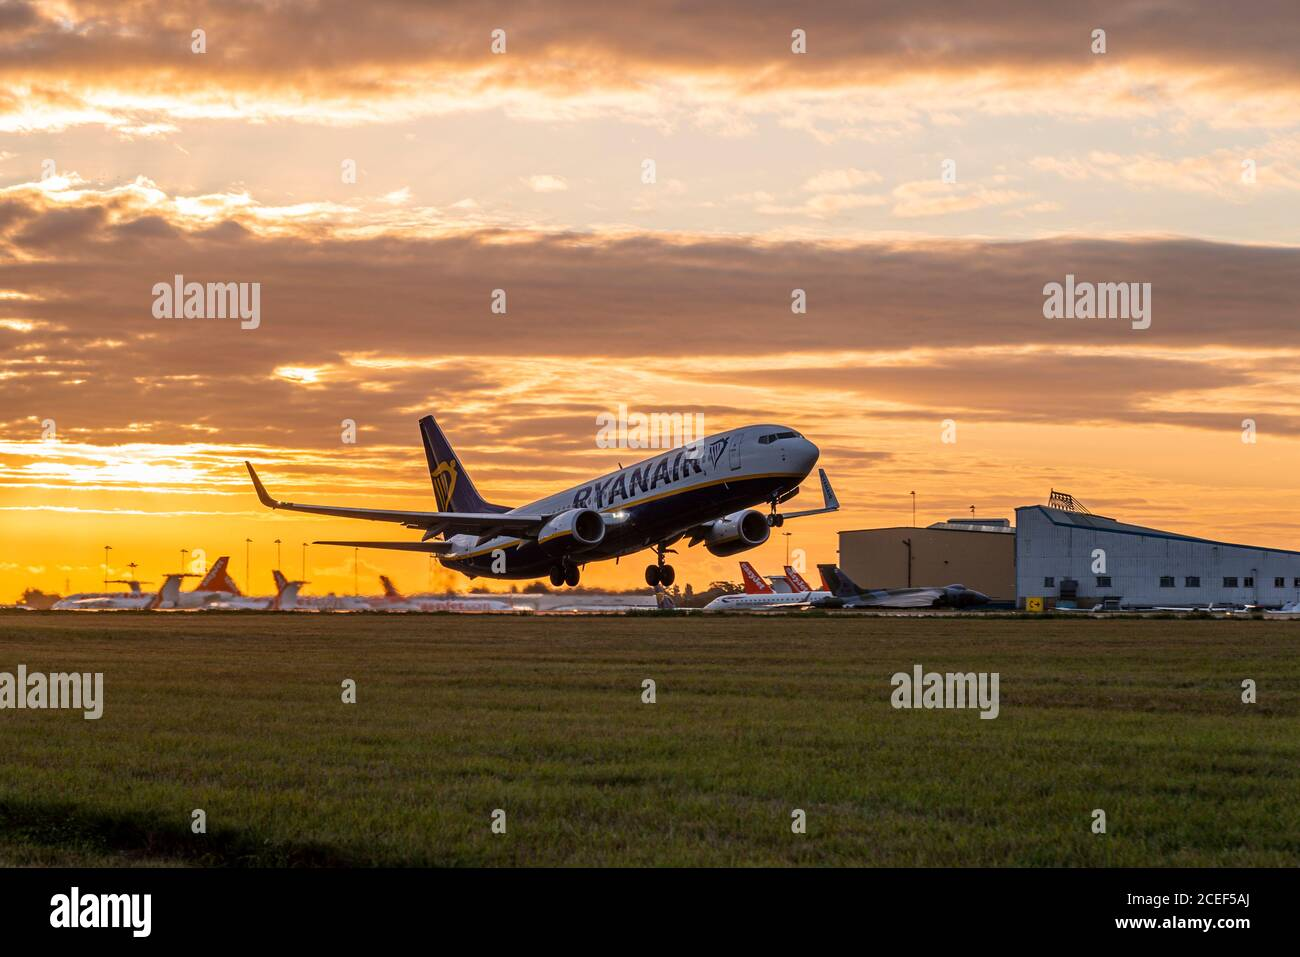 ryanair-boeing-737-taking-off-from-london-southend-airport-at-sunrise-with-red-dawn-sky-early-morning-flight-travellers-heading-europe-destinations-2CEF5AJ.jpg